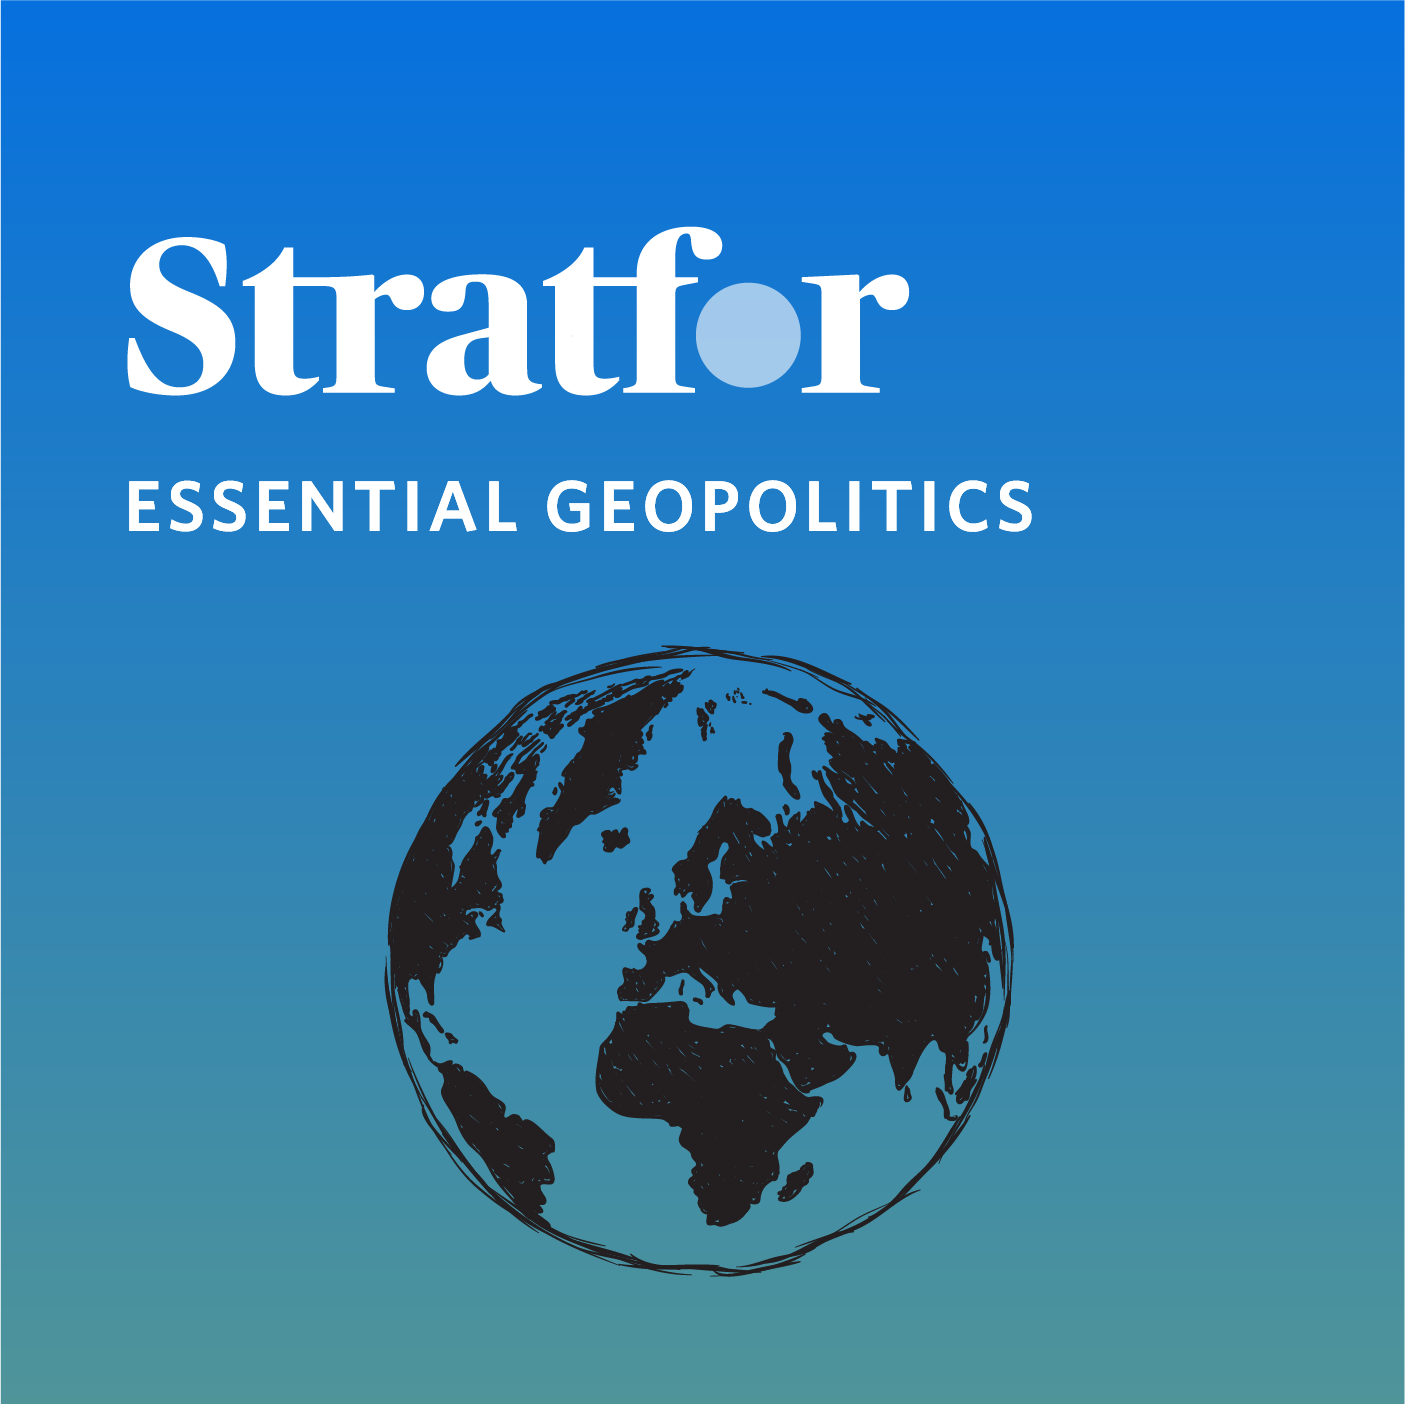 Essential Geopolitics: Why Hong Kong and China Will Continue to Battle